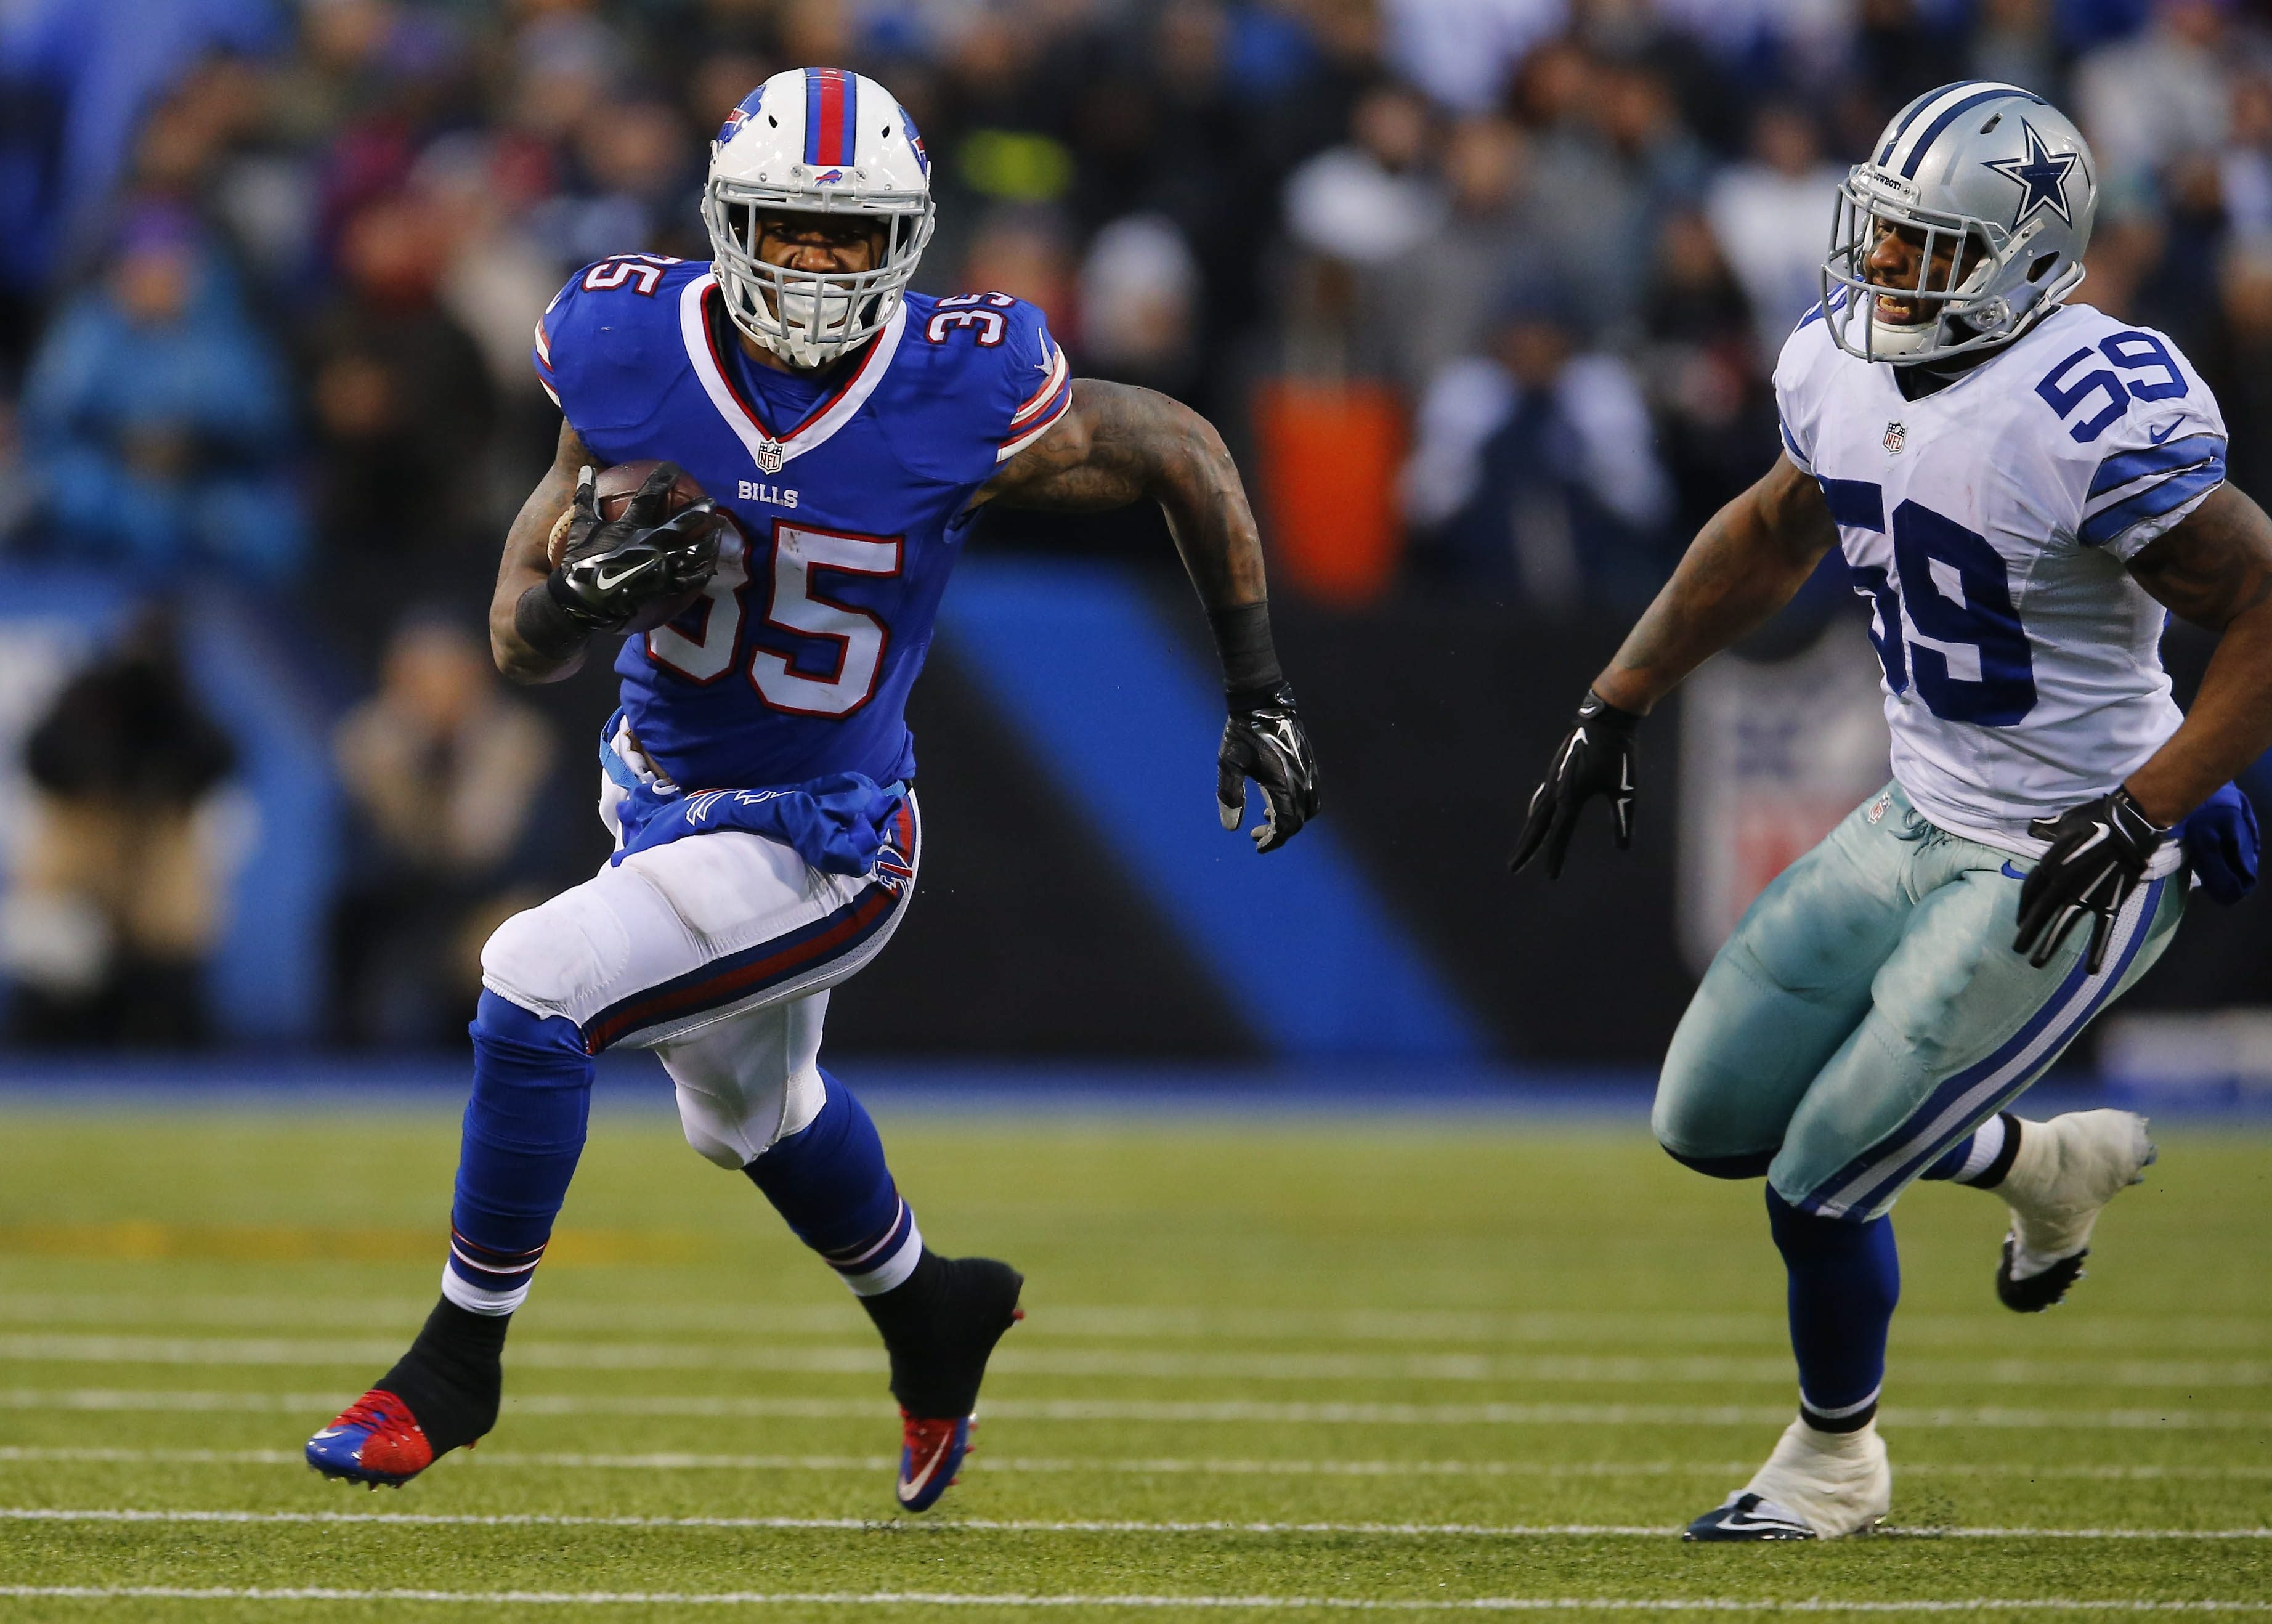 The Bills' Mike Gillislee heads off on one of his long touchdown runs. (Mark Mulville/Buffalo News)